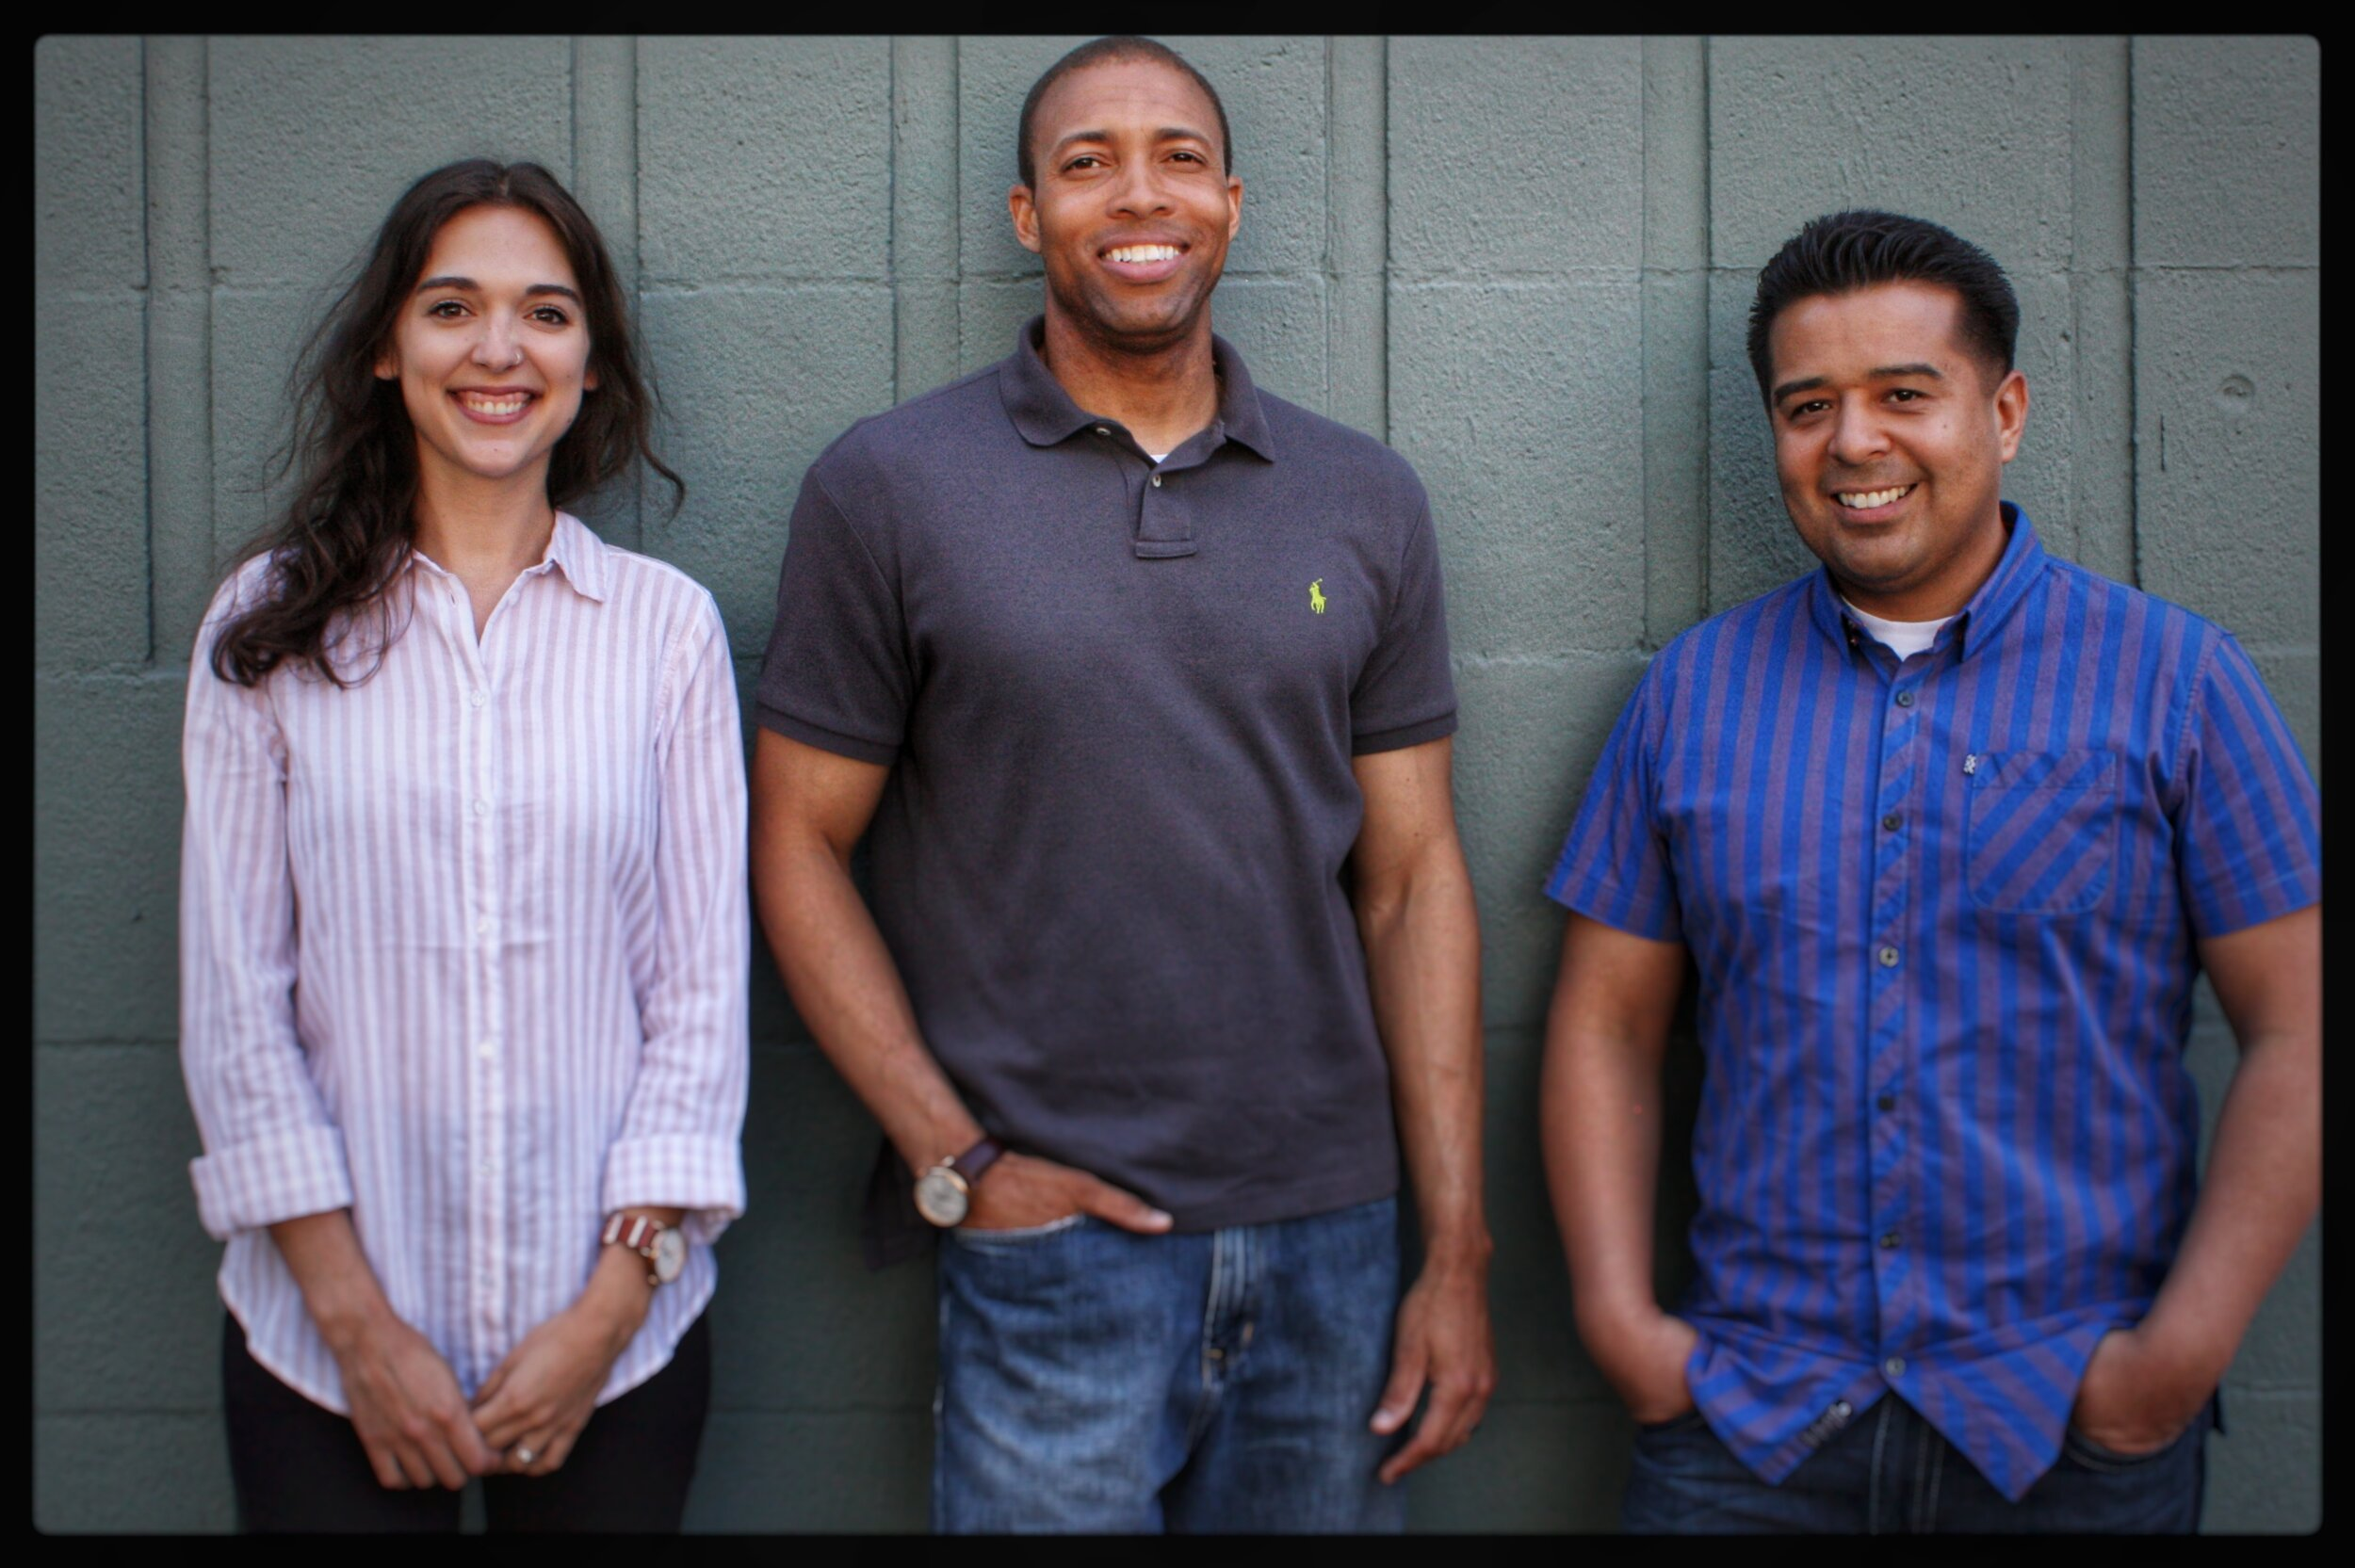 We'll see you in November! - The teachers of Open Lid Music Studio (Caroline, Chad and Cesar)